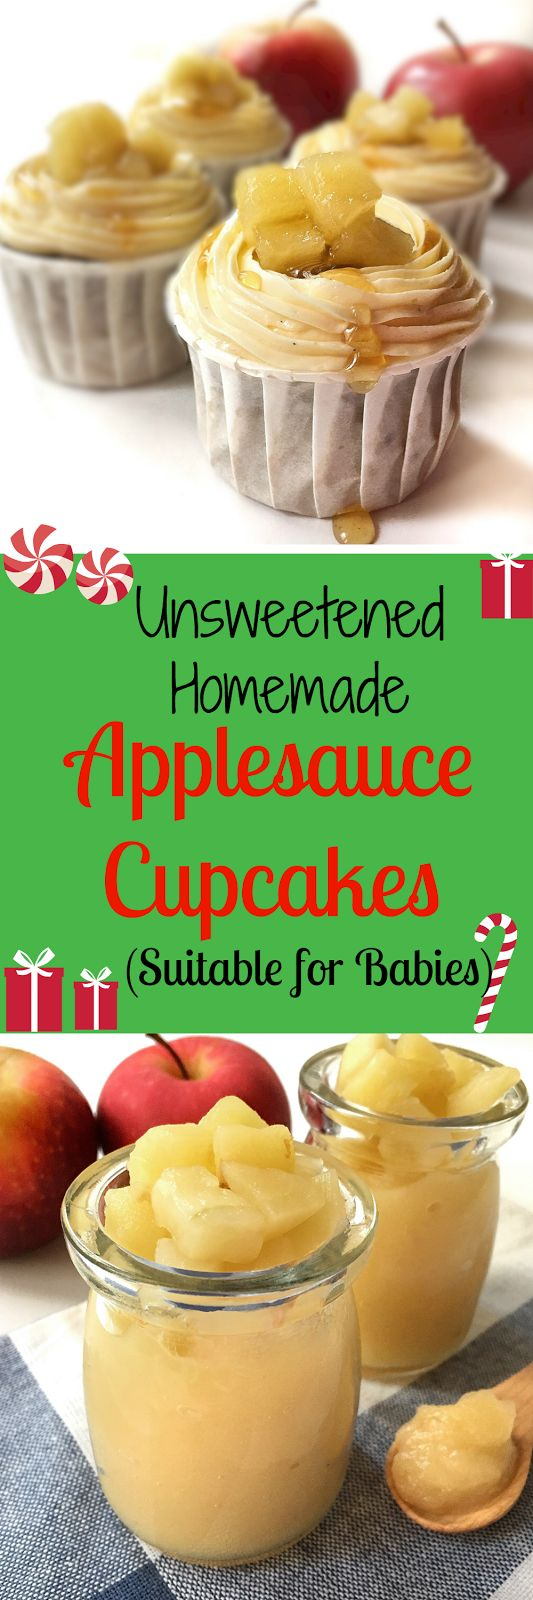 Healthy apple cupcakes ( Suitable for babies) Eggless and no sugar added.